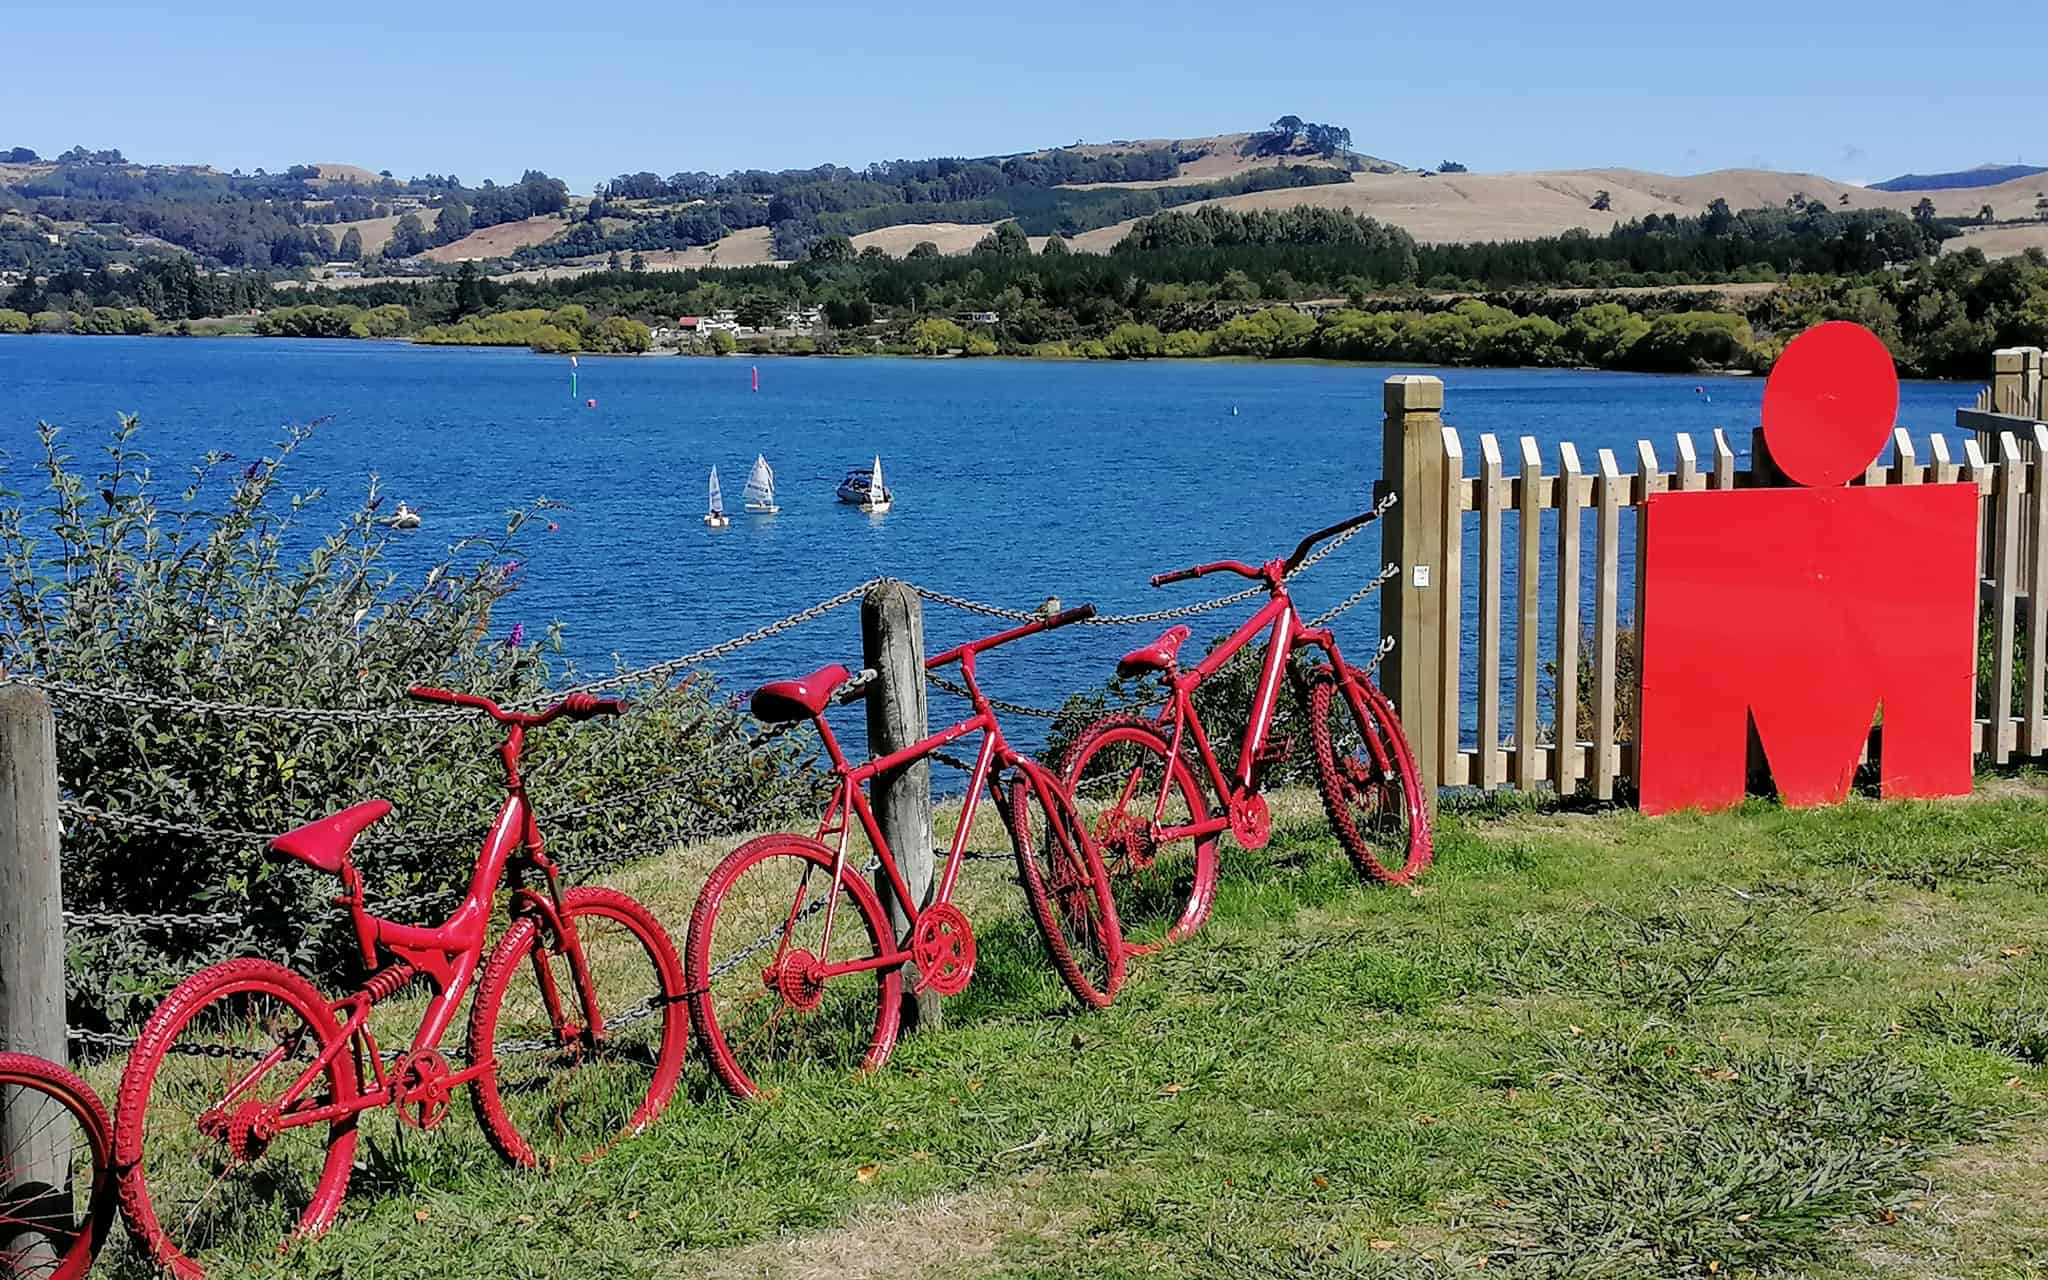 Stay-in-Taupo-Accommodation-Bed-and-Breakfast-in-Taupo-Waikato-New-Zealand-7